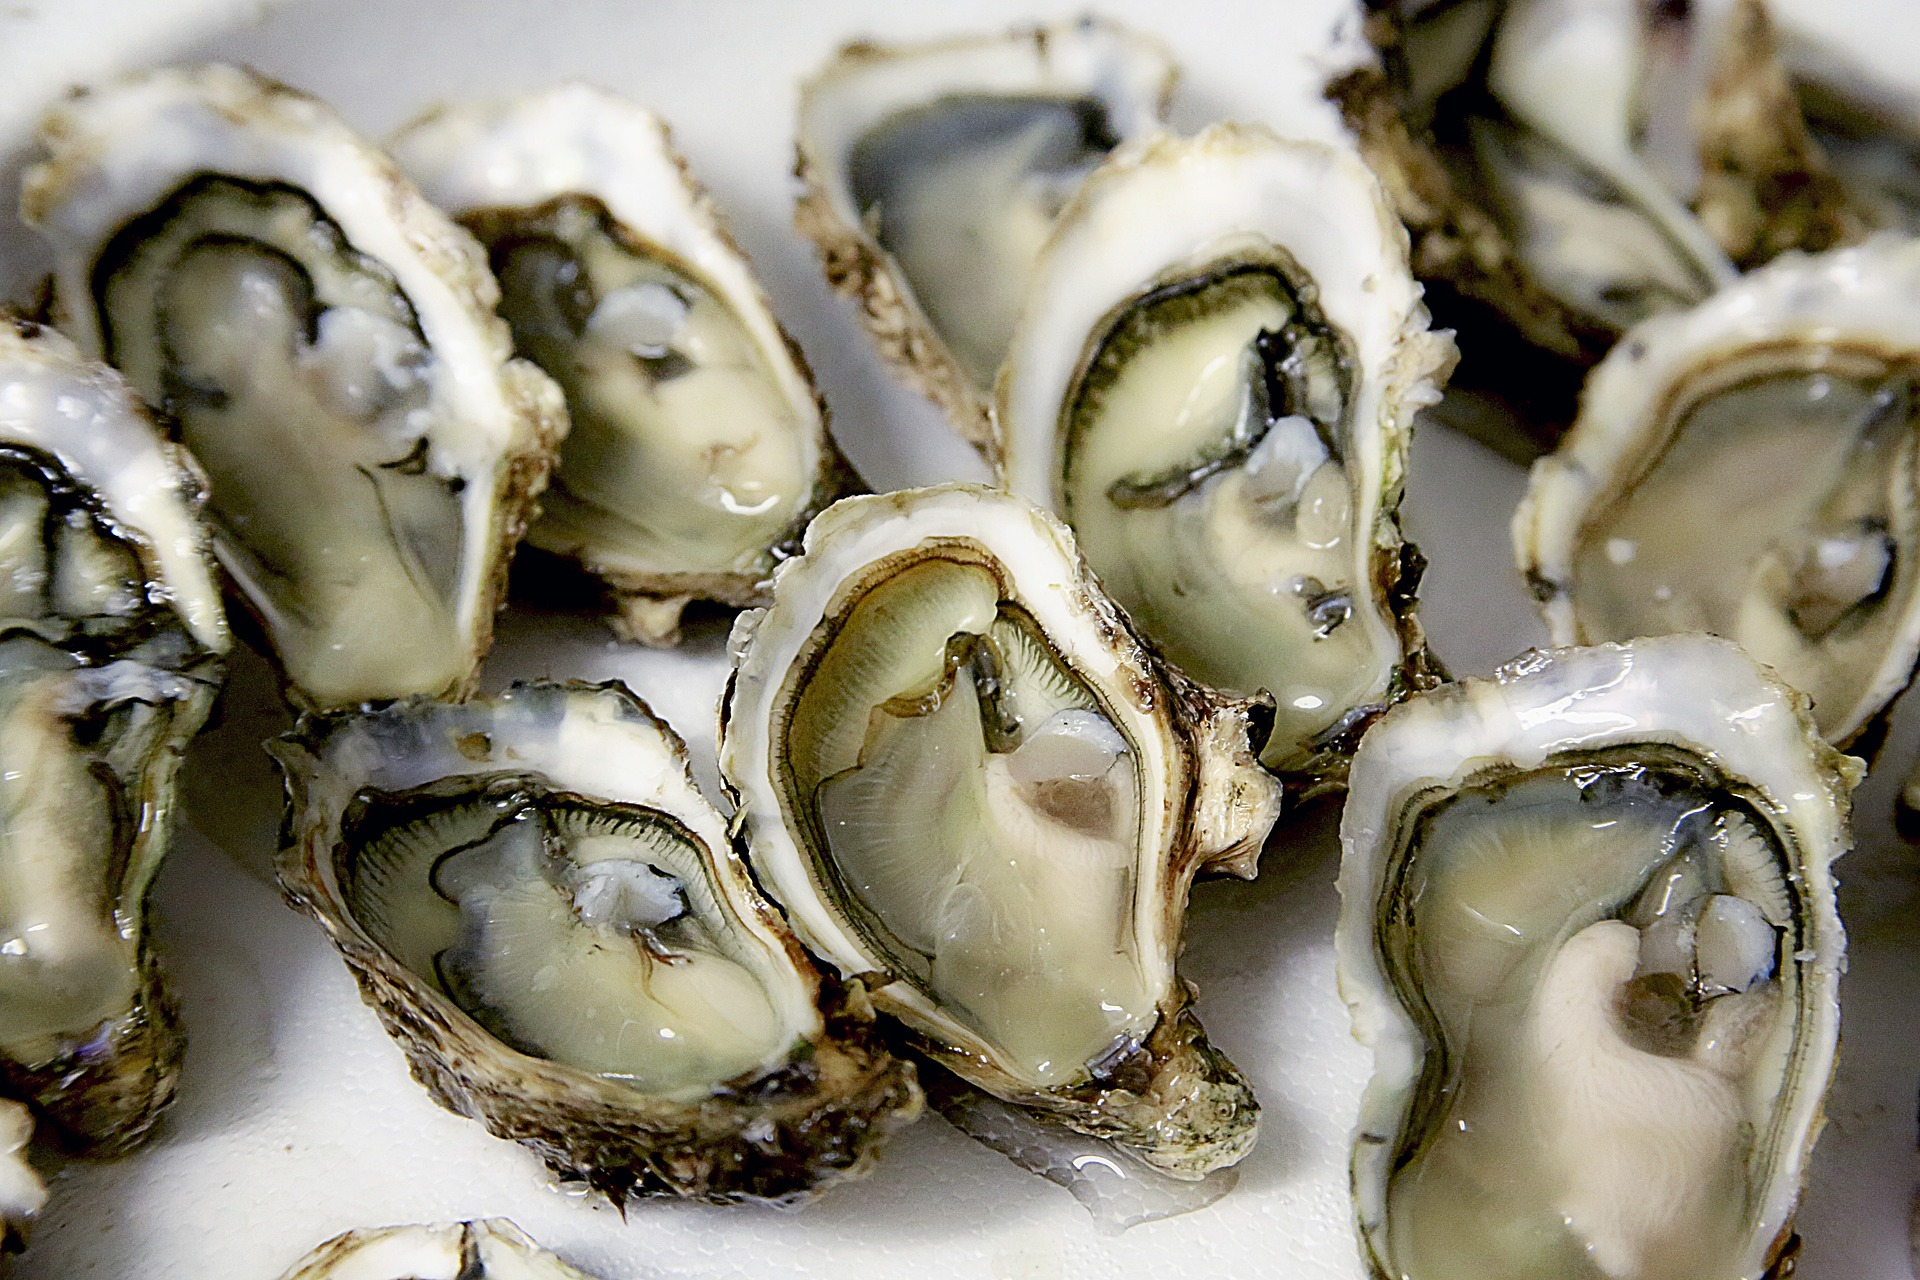 Oysters, credit: Pixabay